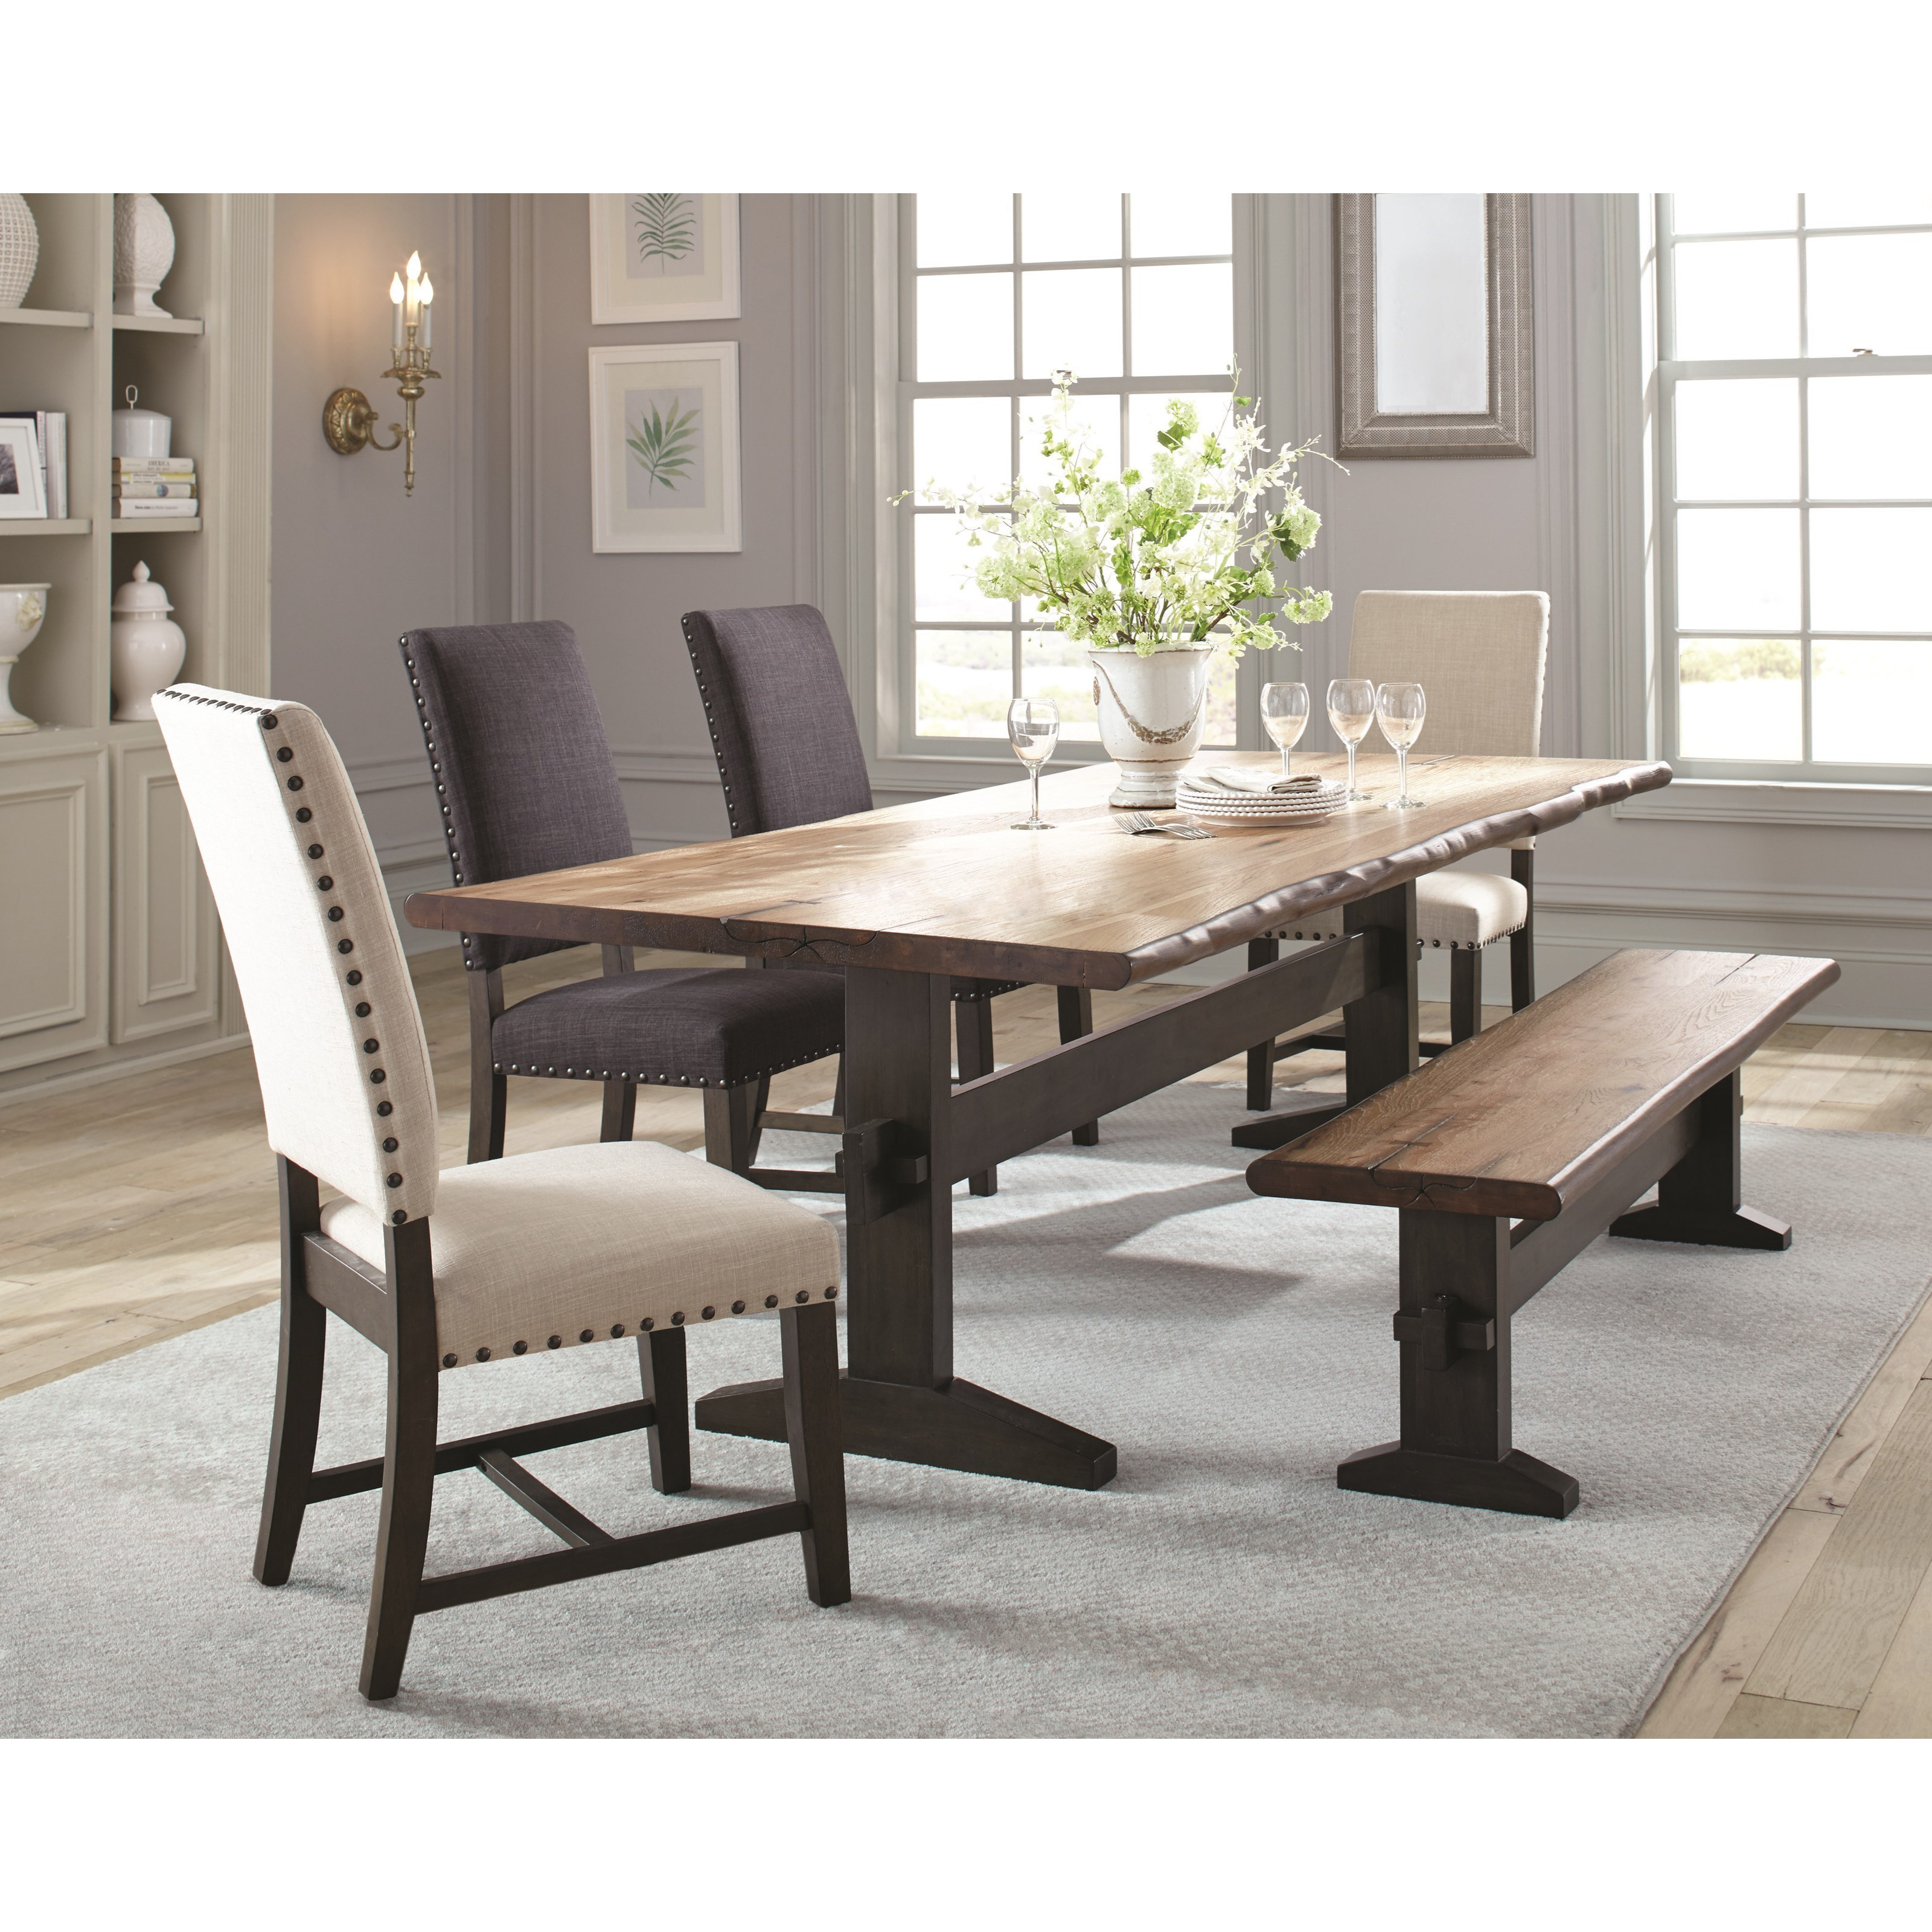 rustic kitchen table with bench. Scott Living BurnhamDining Table Set With Bench Rustic Kitchen T